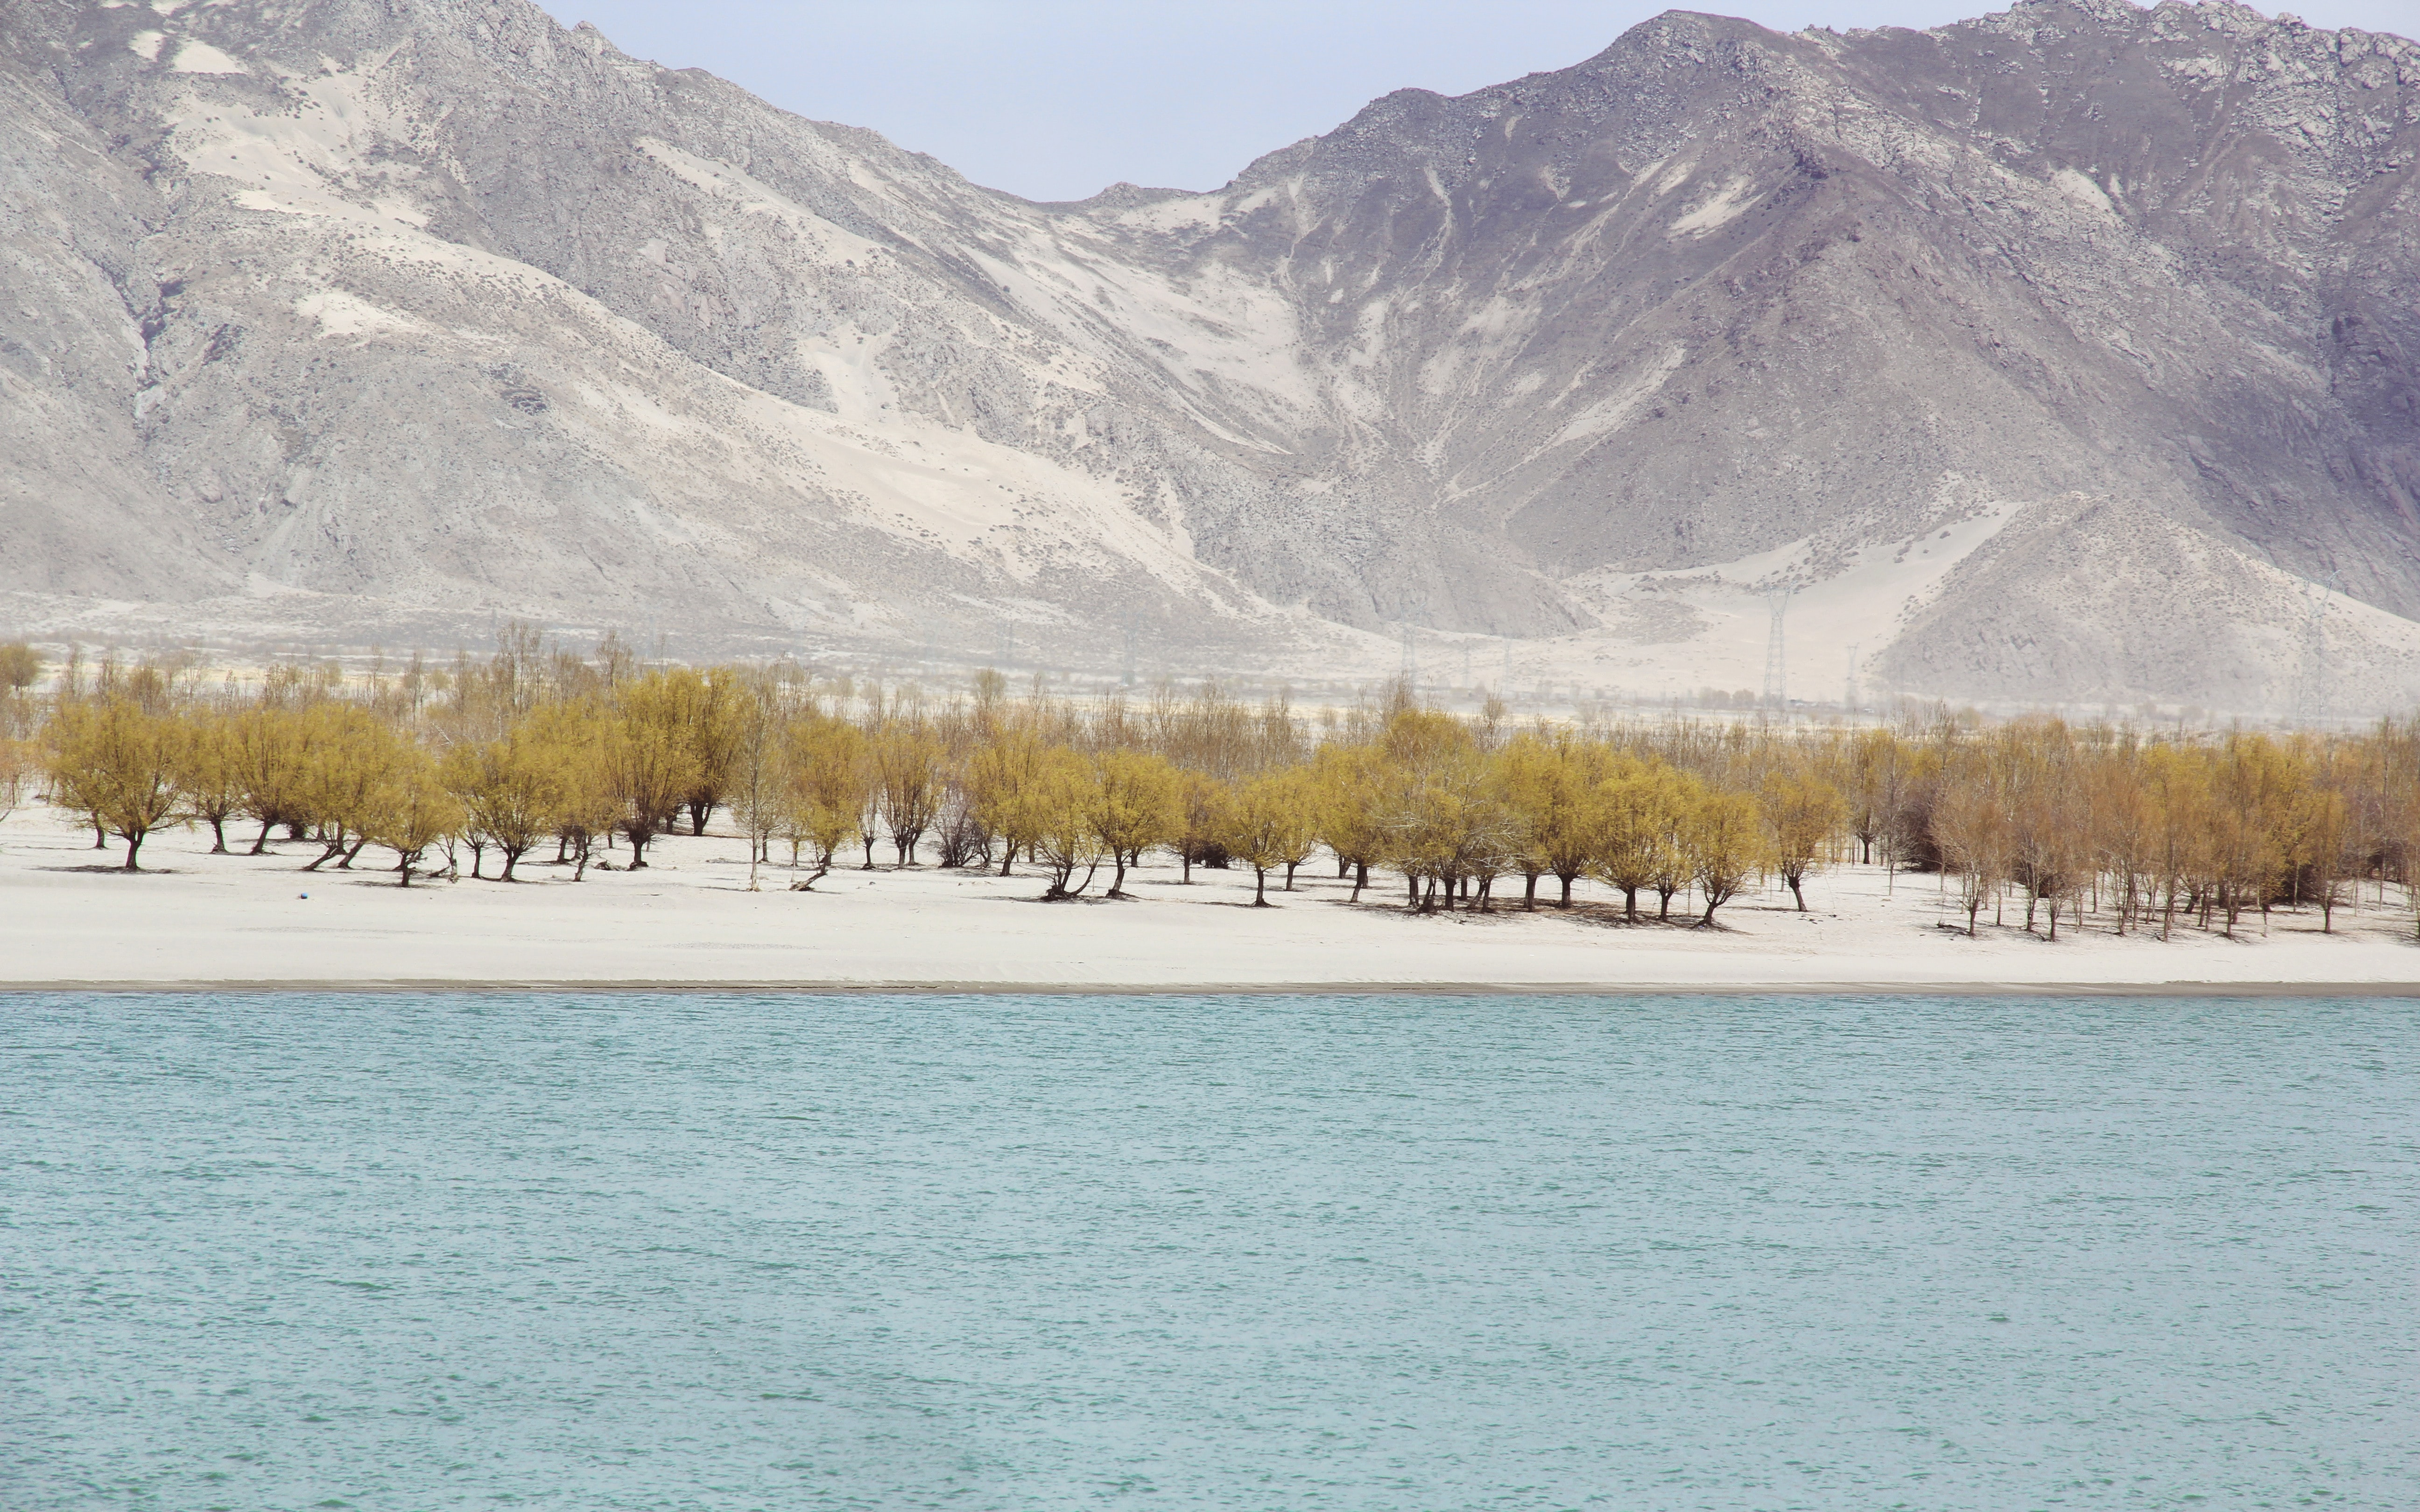 A refreshing lake in the middle of a desolate desert in Tibet